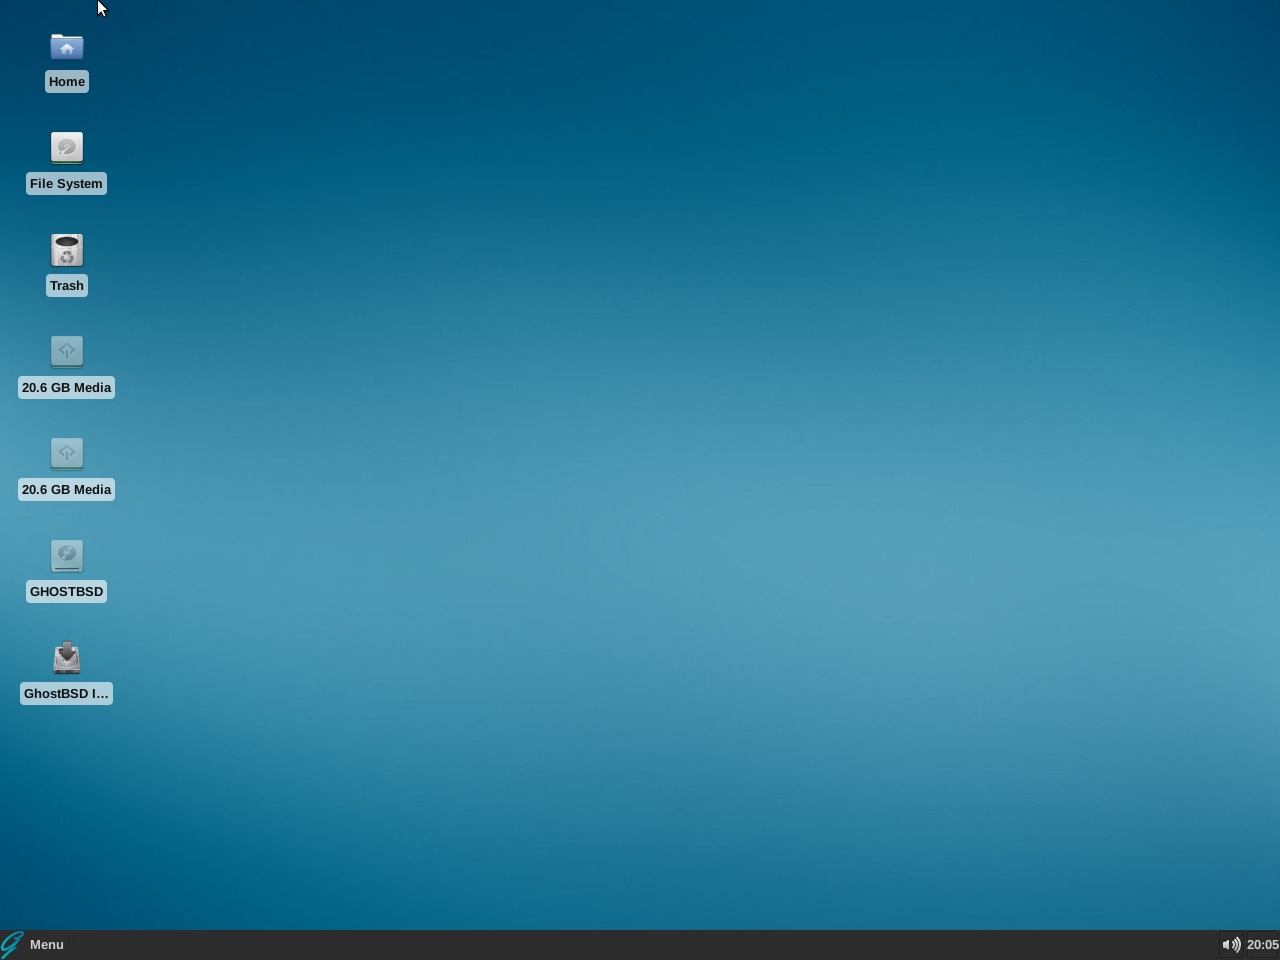 Download GhostBSD Xfce 19 04